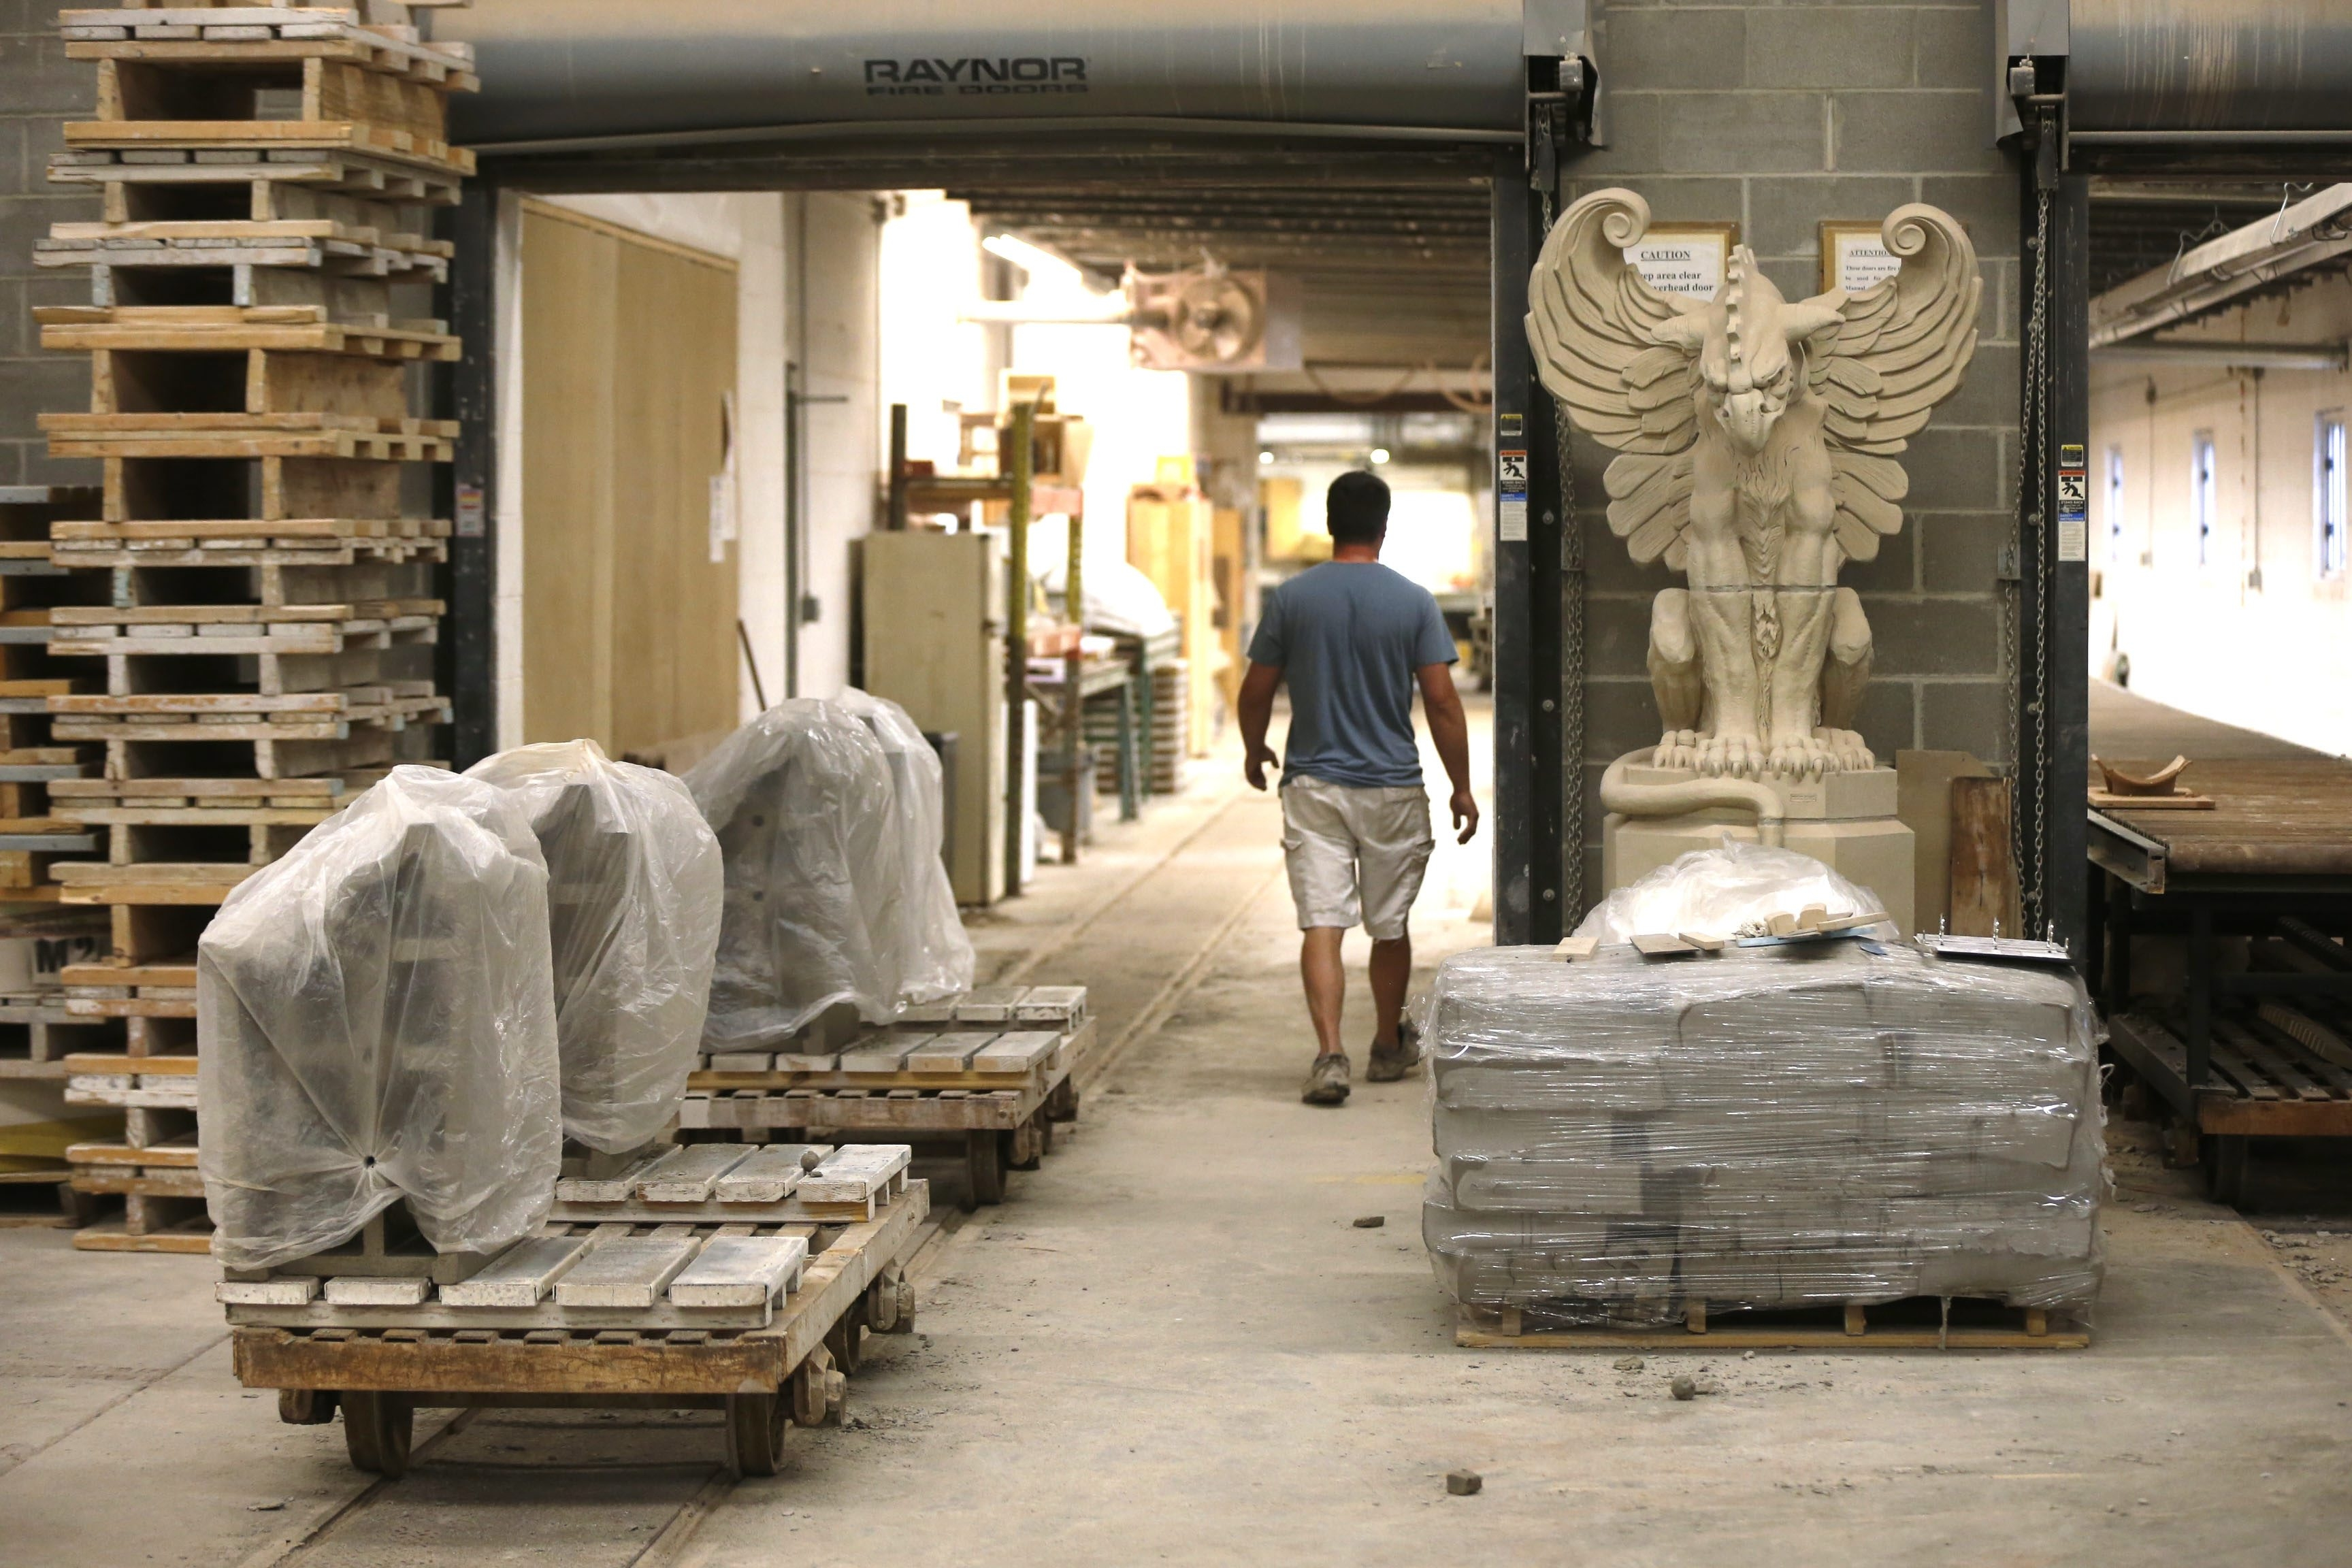 Copies of Boston Valley Terra Cotta's favorite pieces from jobs all over the world decorate the Orchard Park plant. The company recently completed a $2.6 million expansion and added a dozen jobs to its workforce. It also increased the value of the orders in the pipeline to $20 million from $16 million.